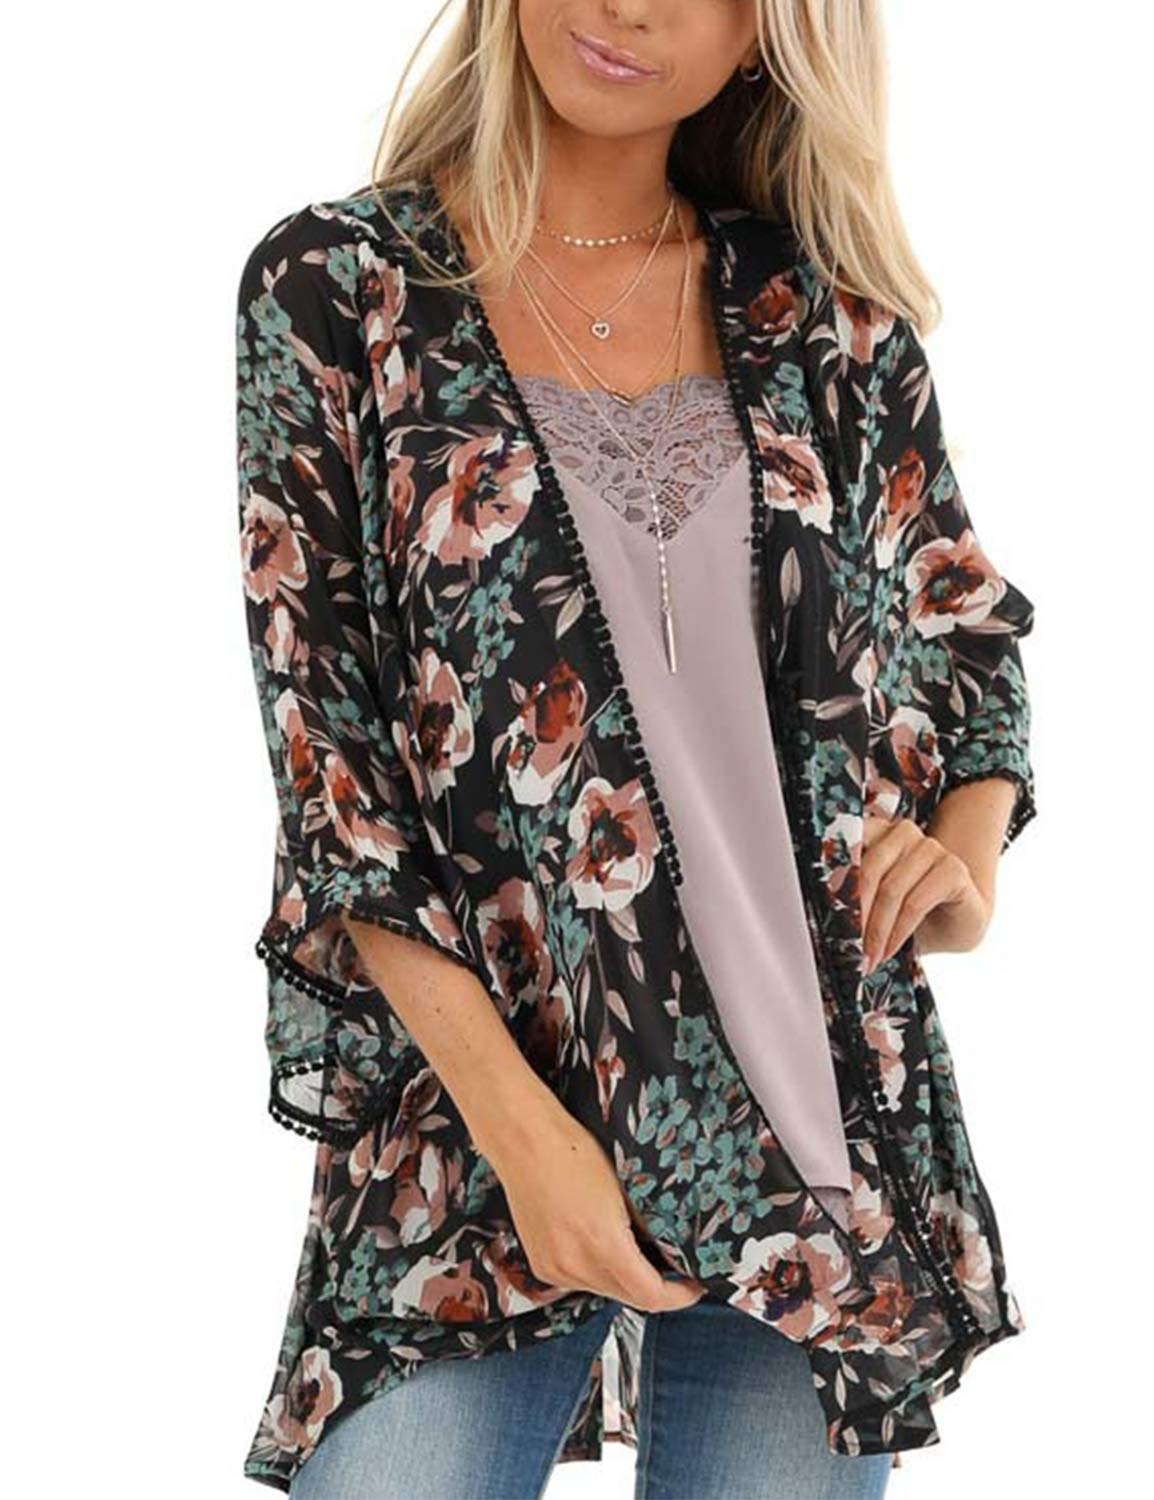 Women's Open Front Top Chiffon Floral Kimono 3/4 Sleeve Split Short Cover Ups